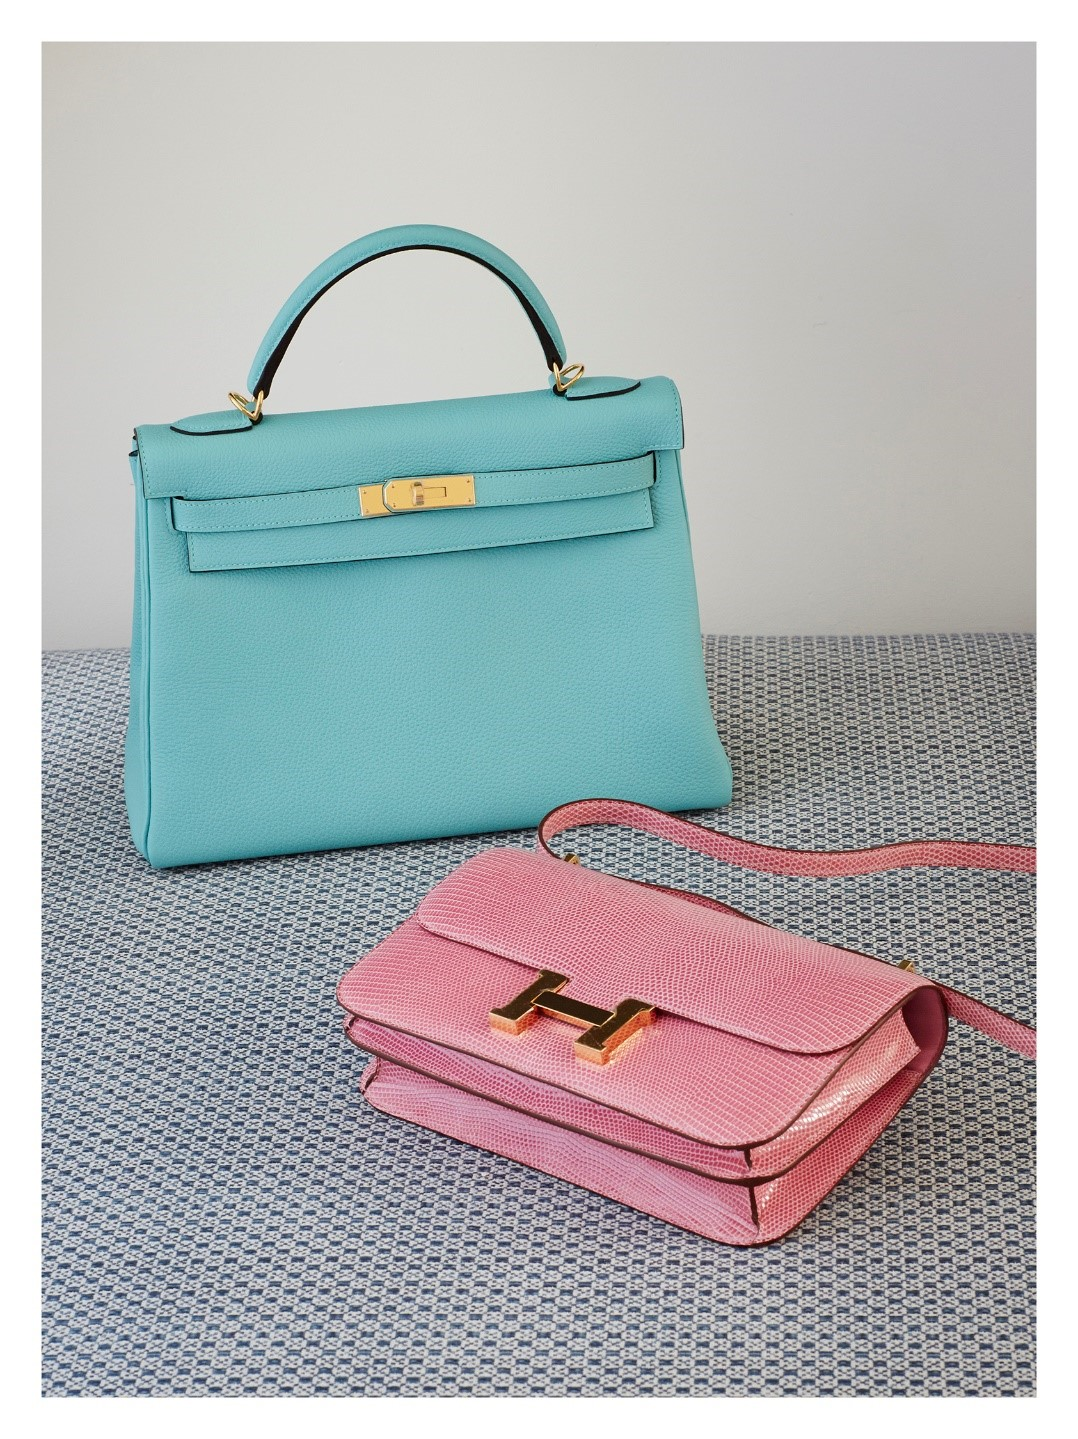 Hermes Kelly Handbag and Hermes Constance